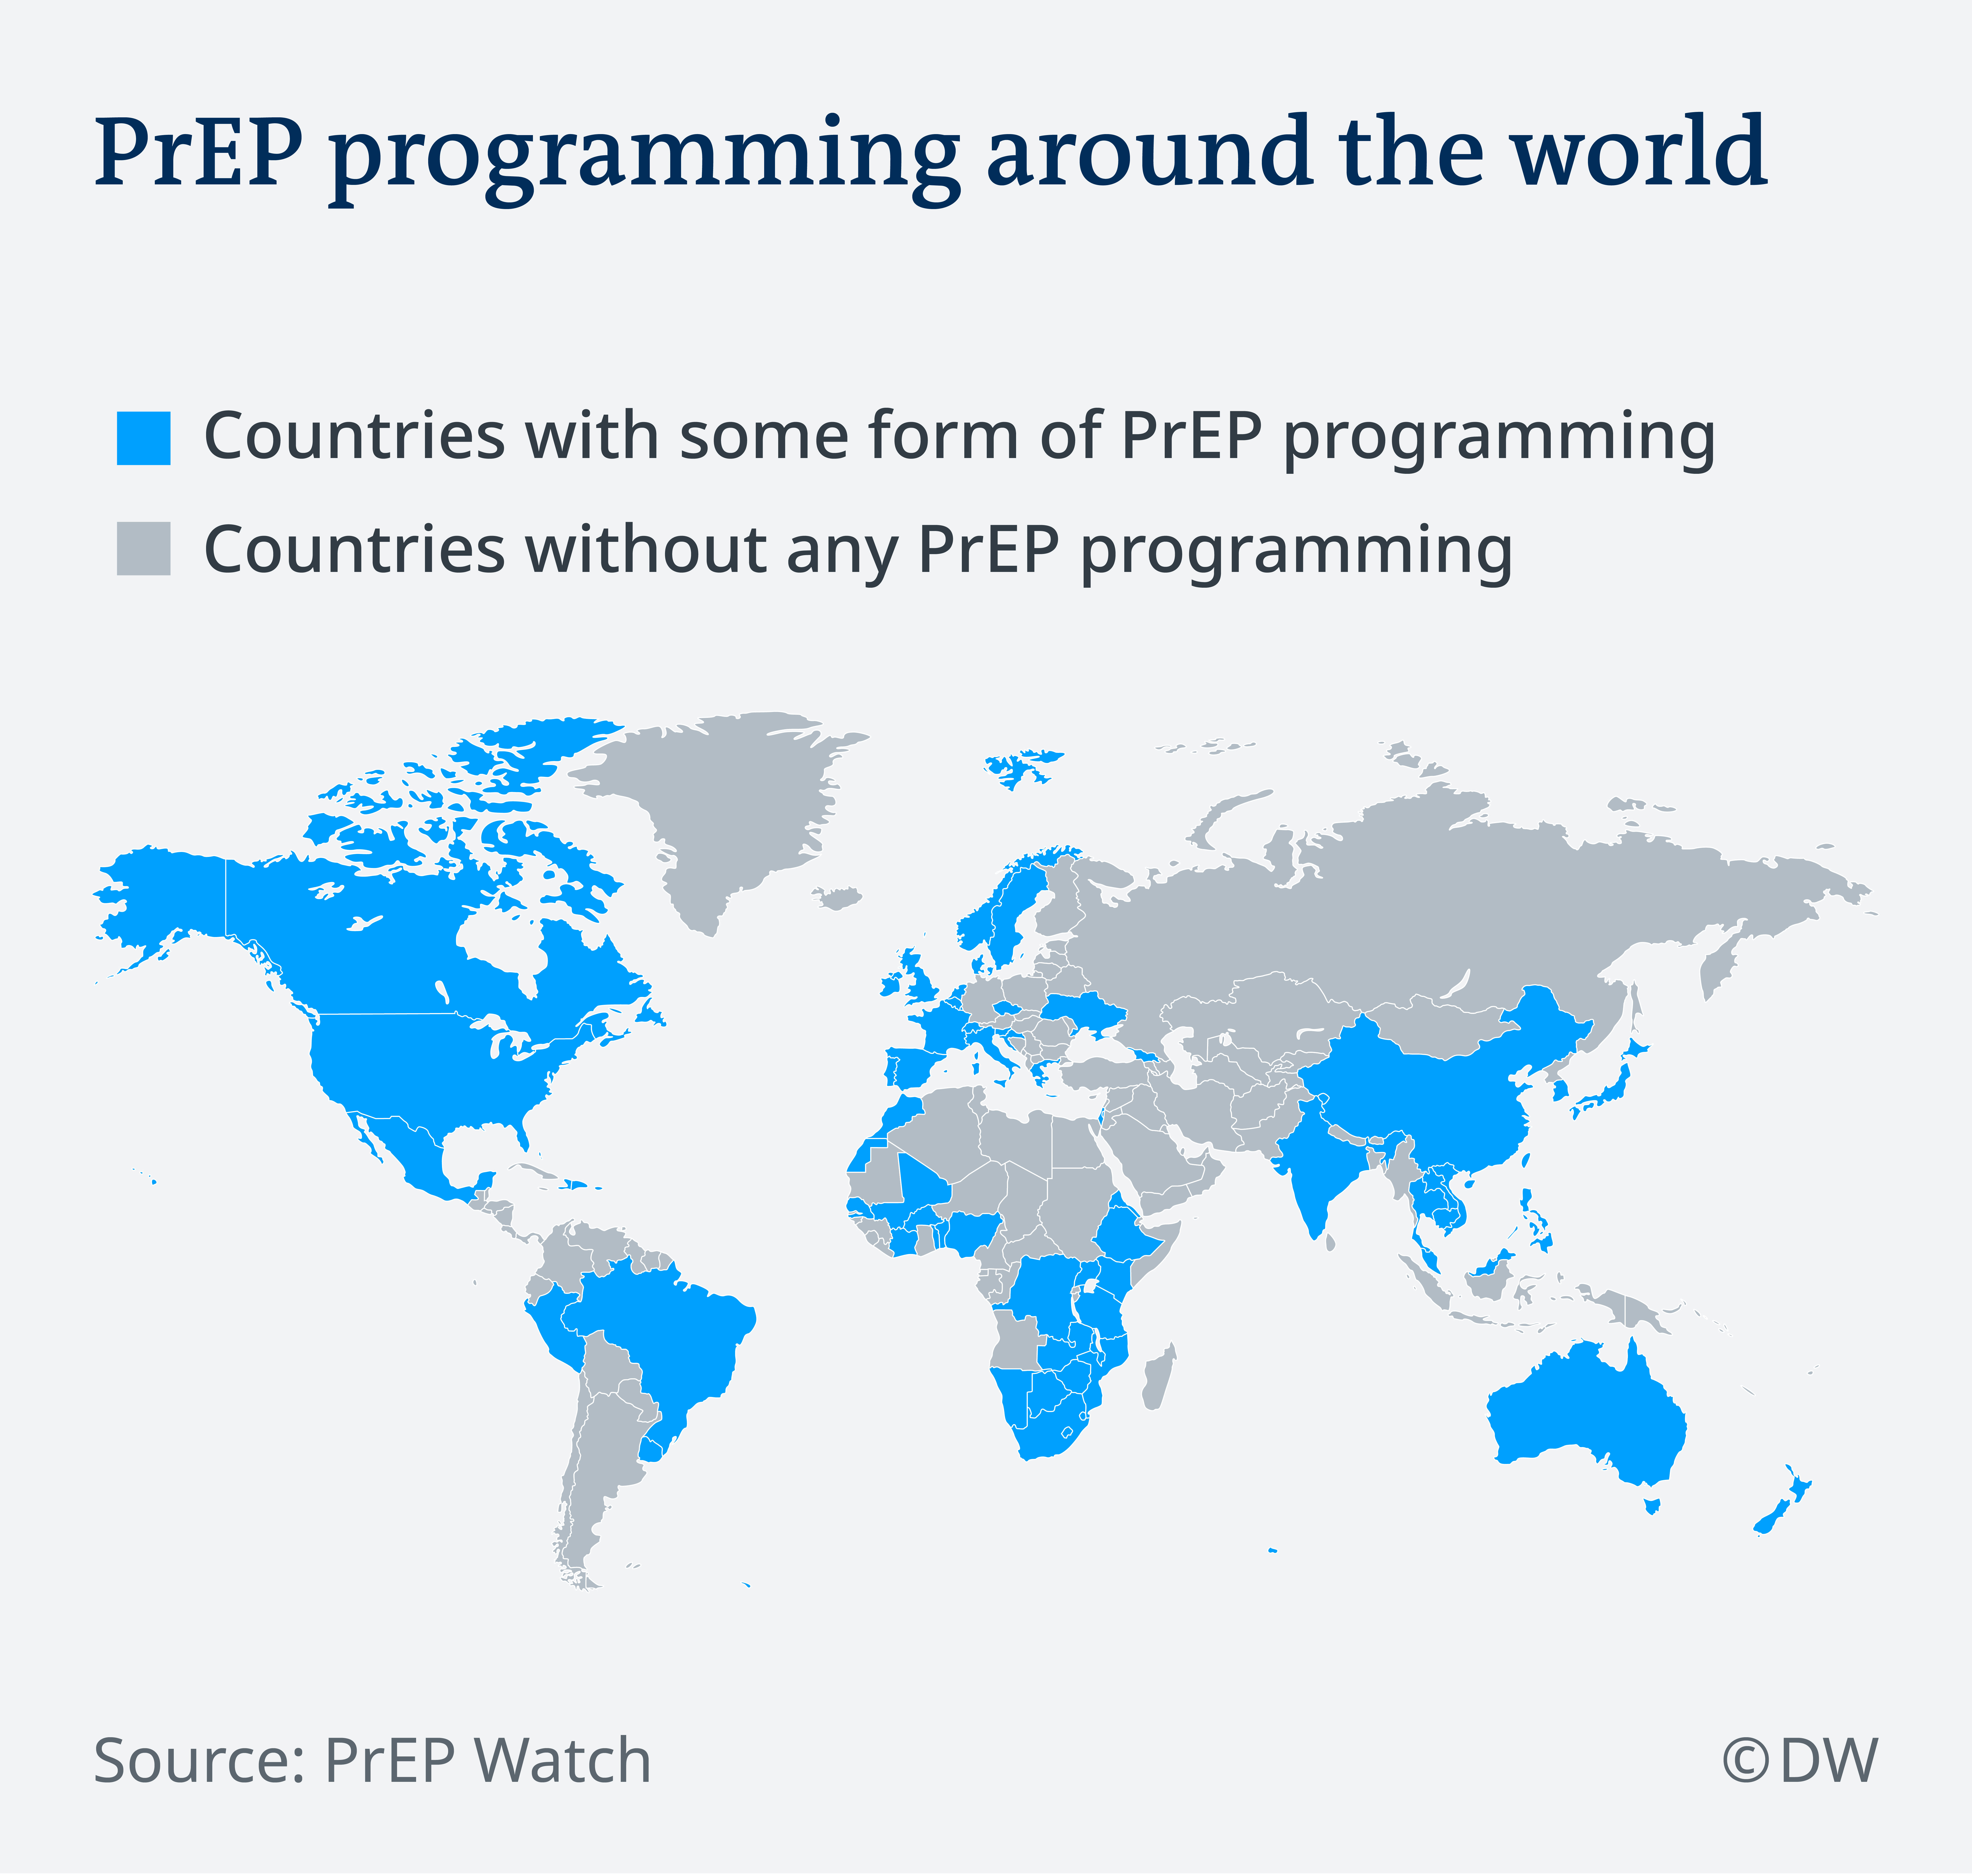 Map showing countries where PrEP programming is available